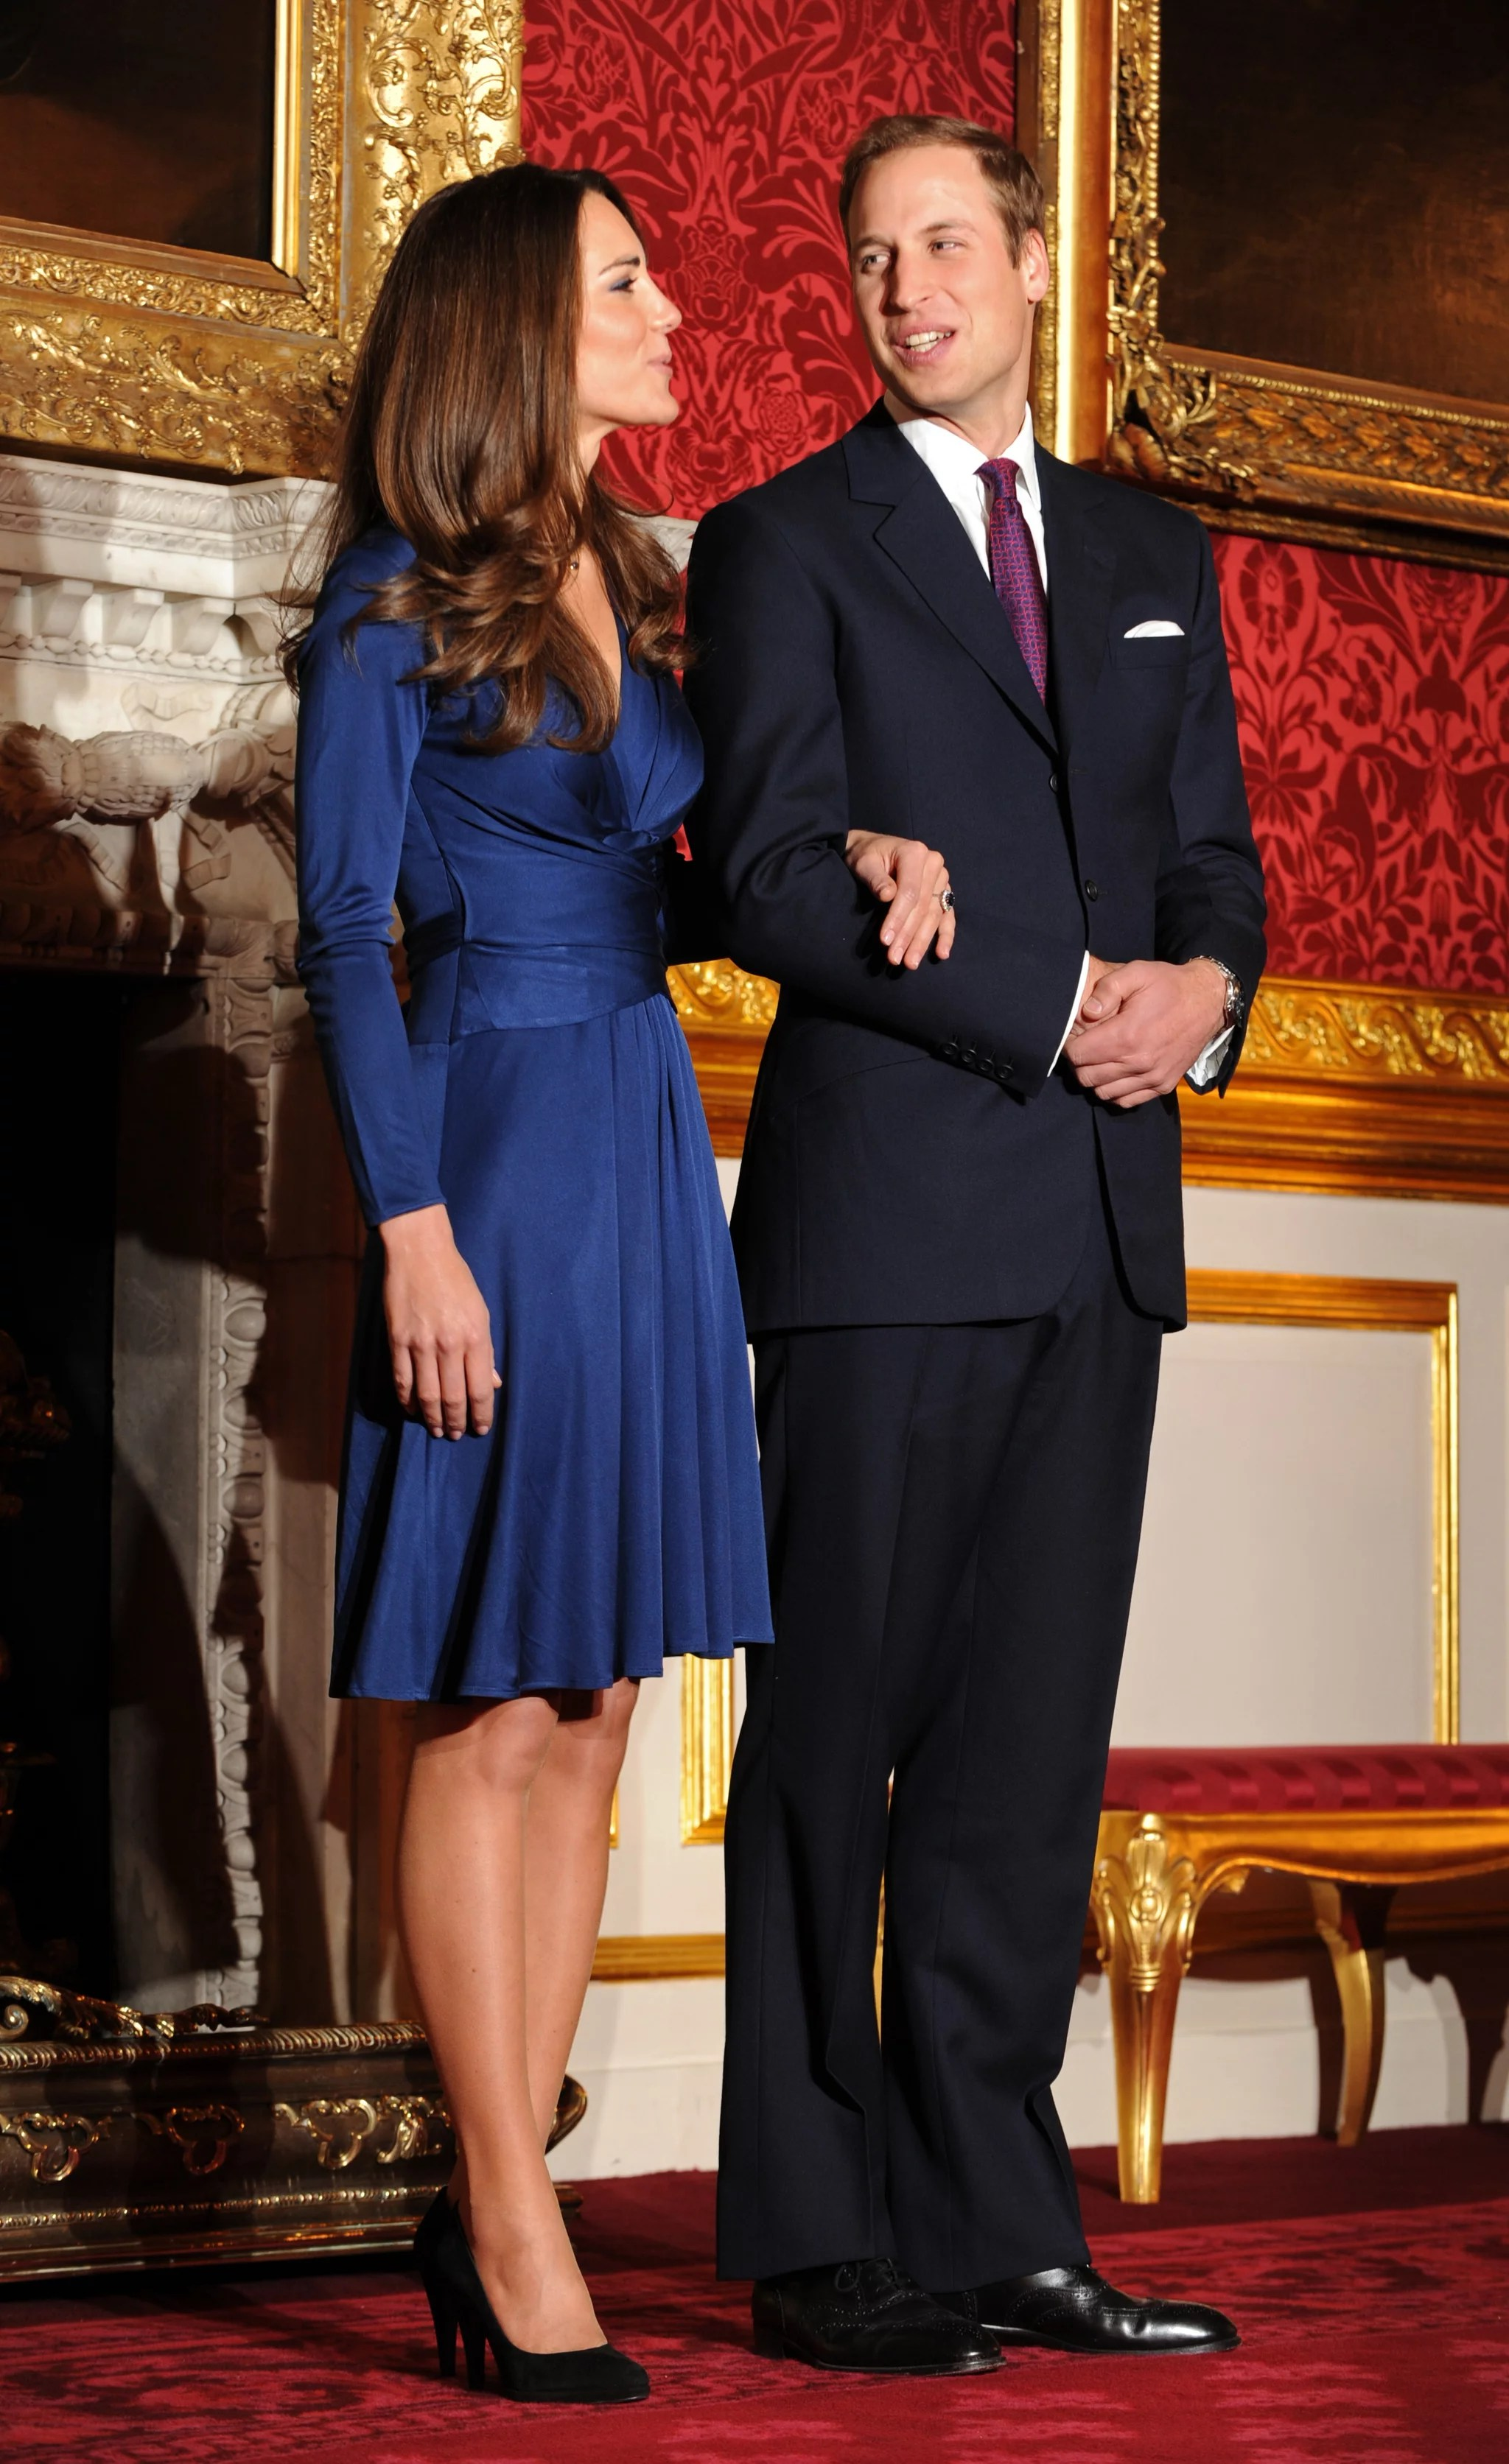 Pictures of Engaged Prince William and Kate Middleton Pose